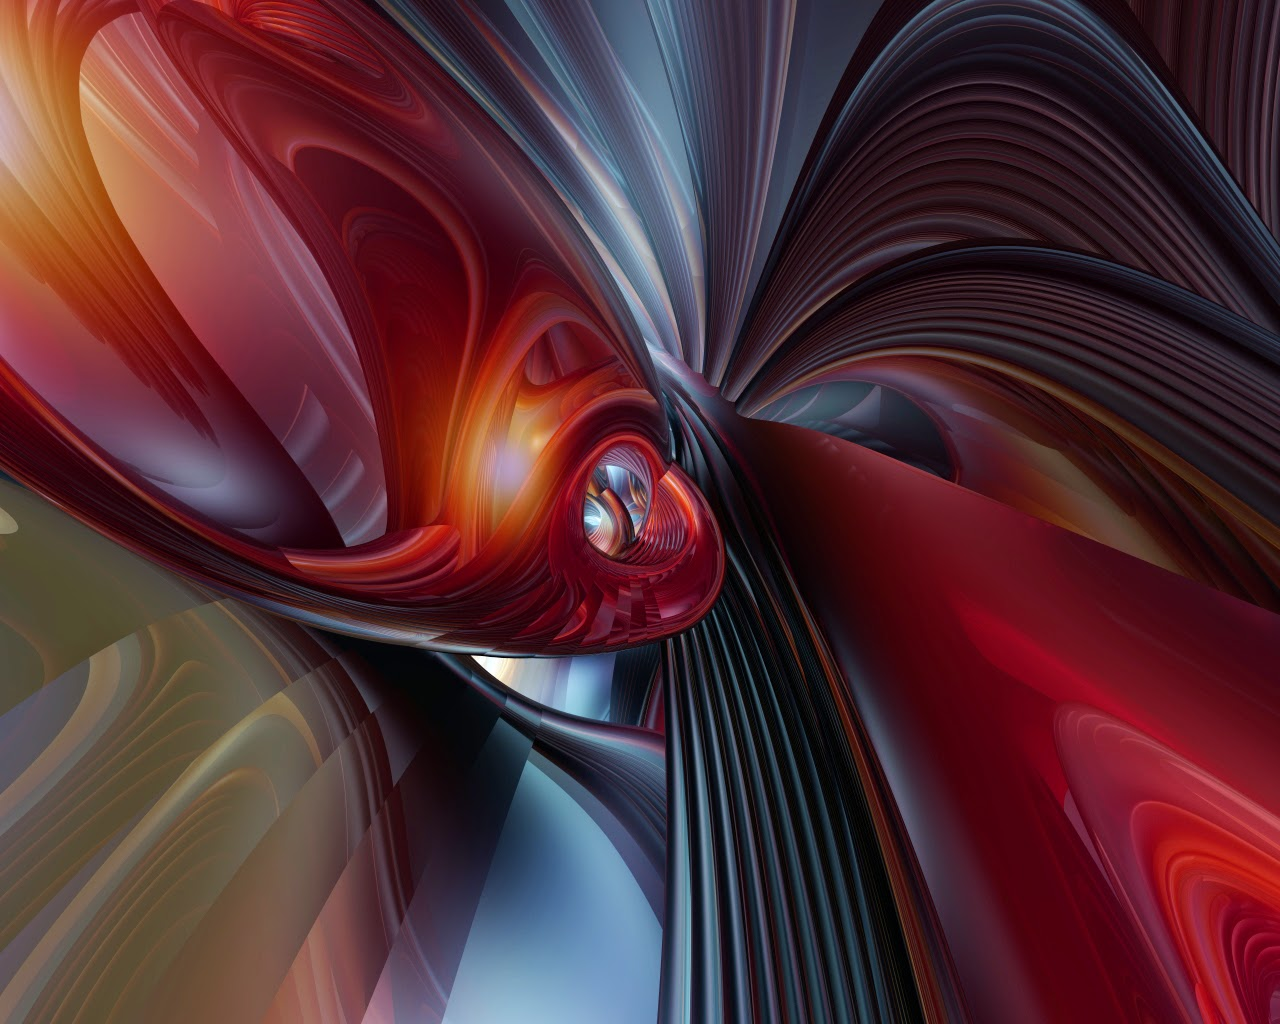 Abstract Replicated hd wallpaper, Images, Photos, Pics